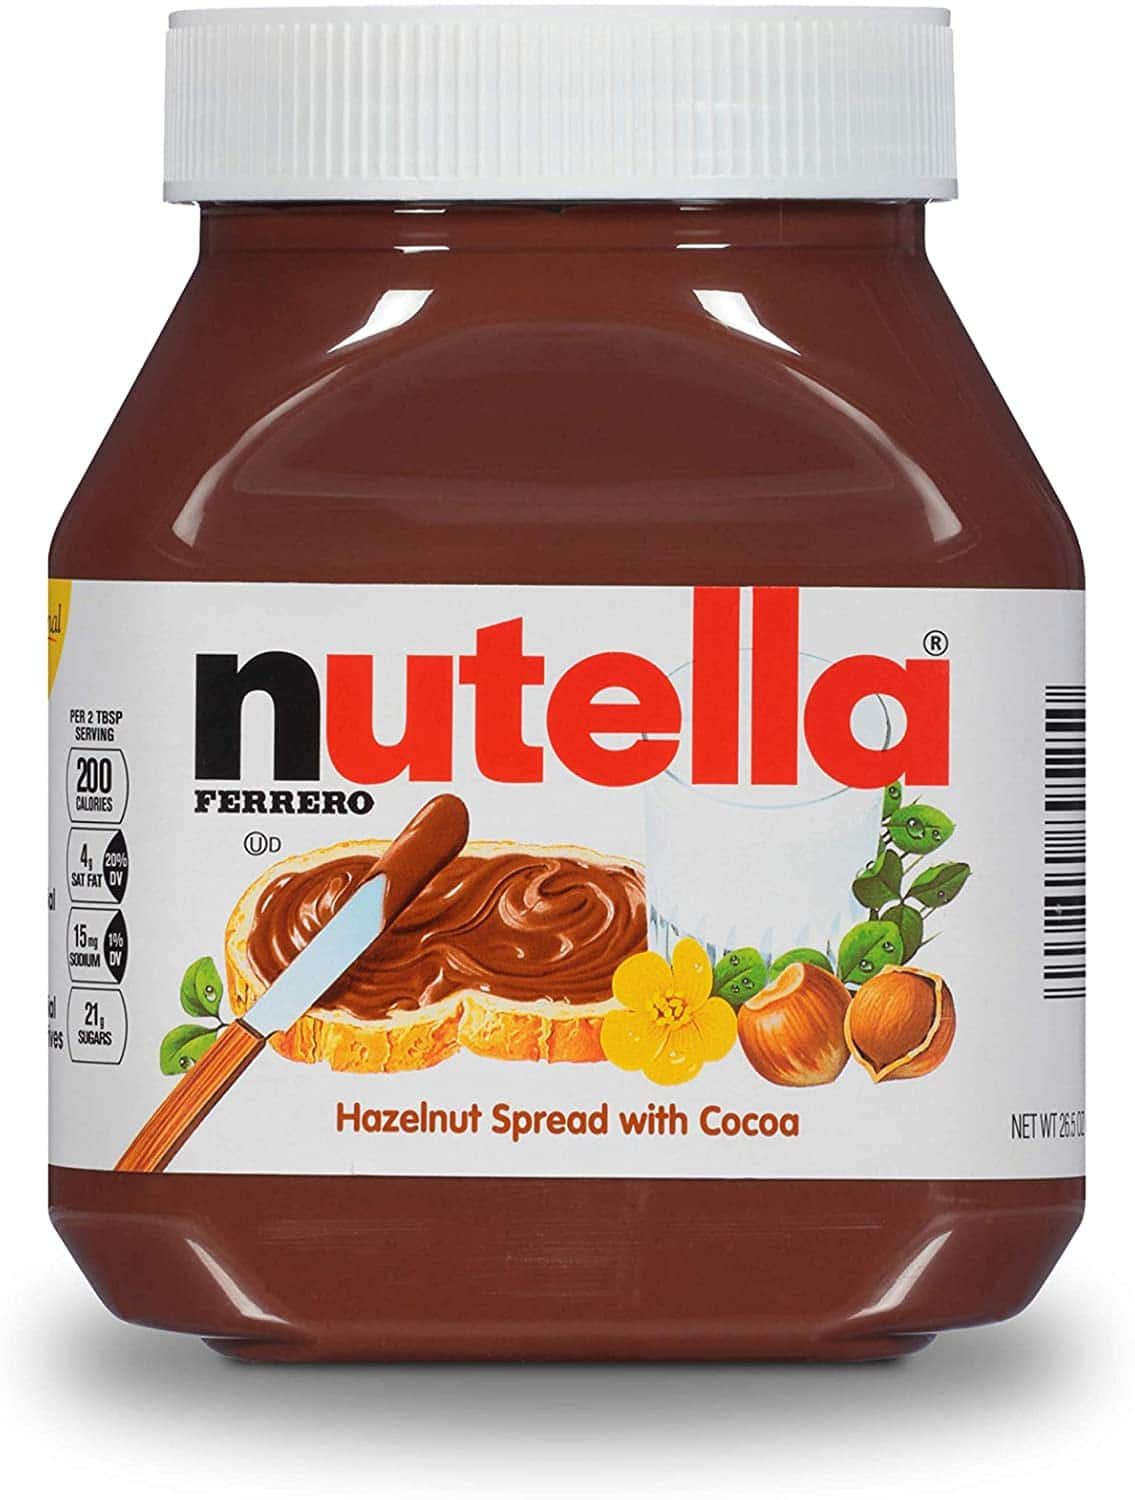 26.5oz. Nutella Chocolate Hazelnut Spread w/ Cocoa